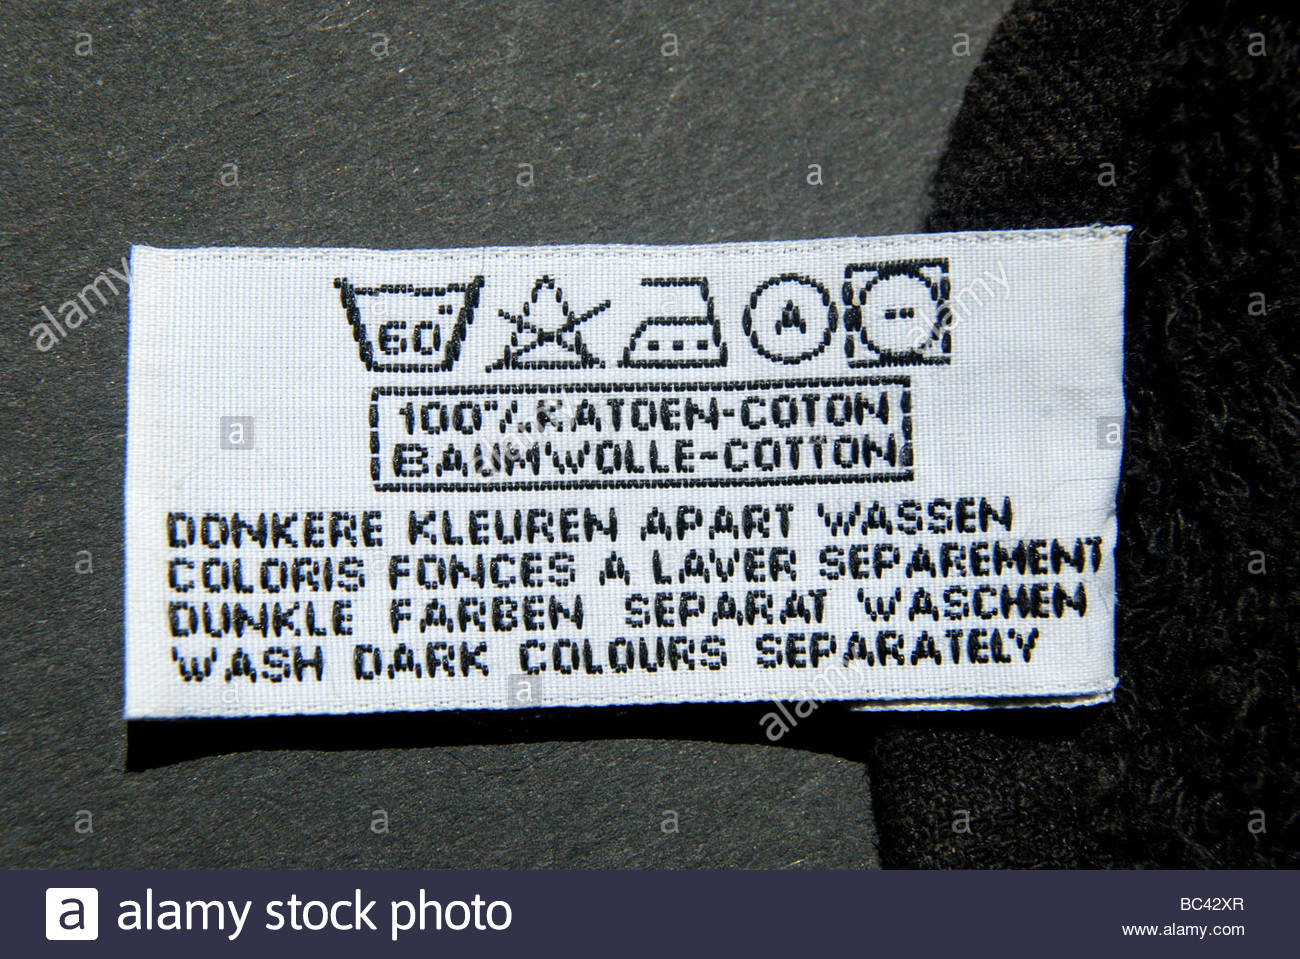 Wash dark colours separately stock photos wash dark colours washing instructions on a black towel in symbols dutch french german and english biocorpaavc